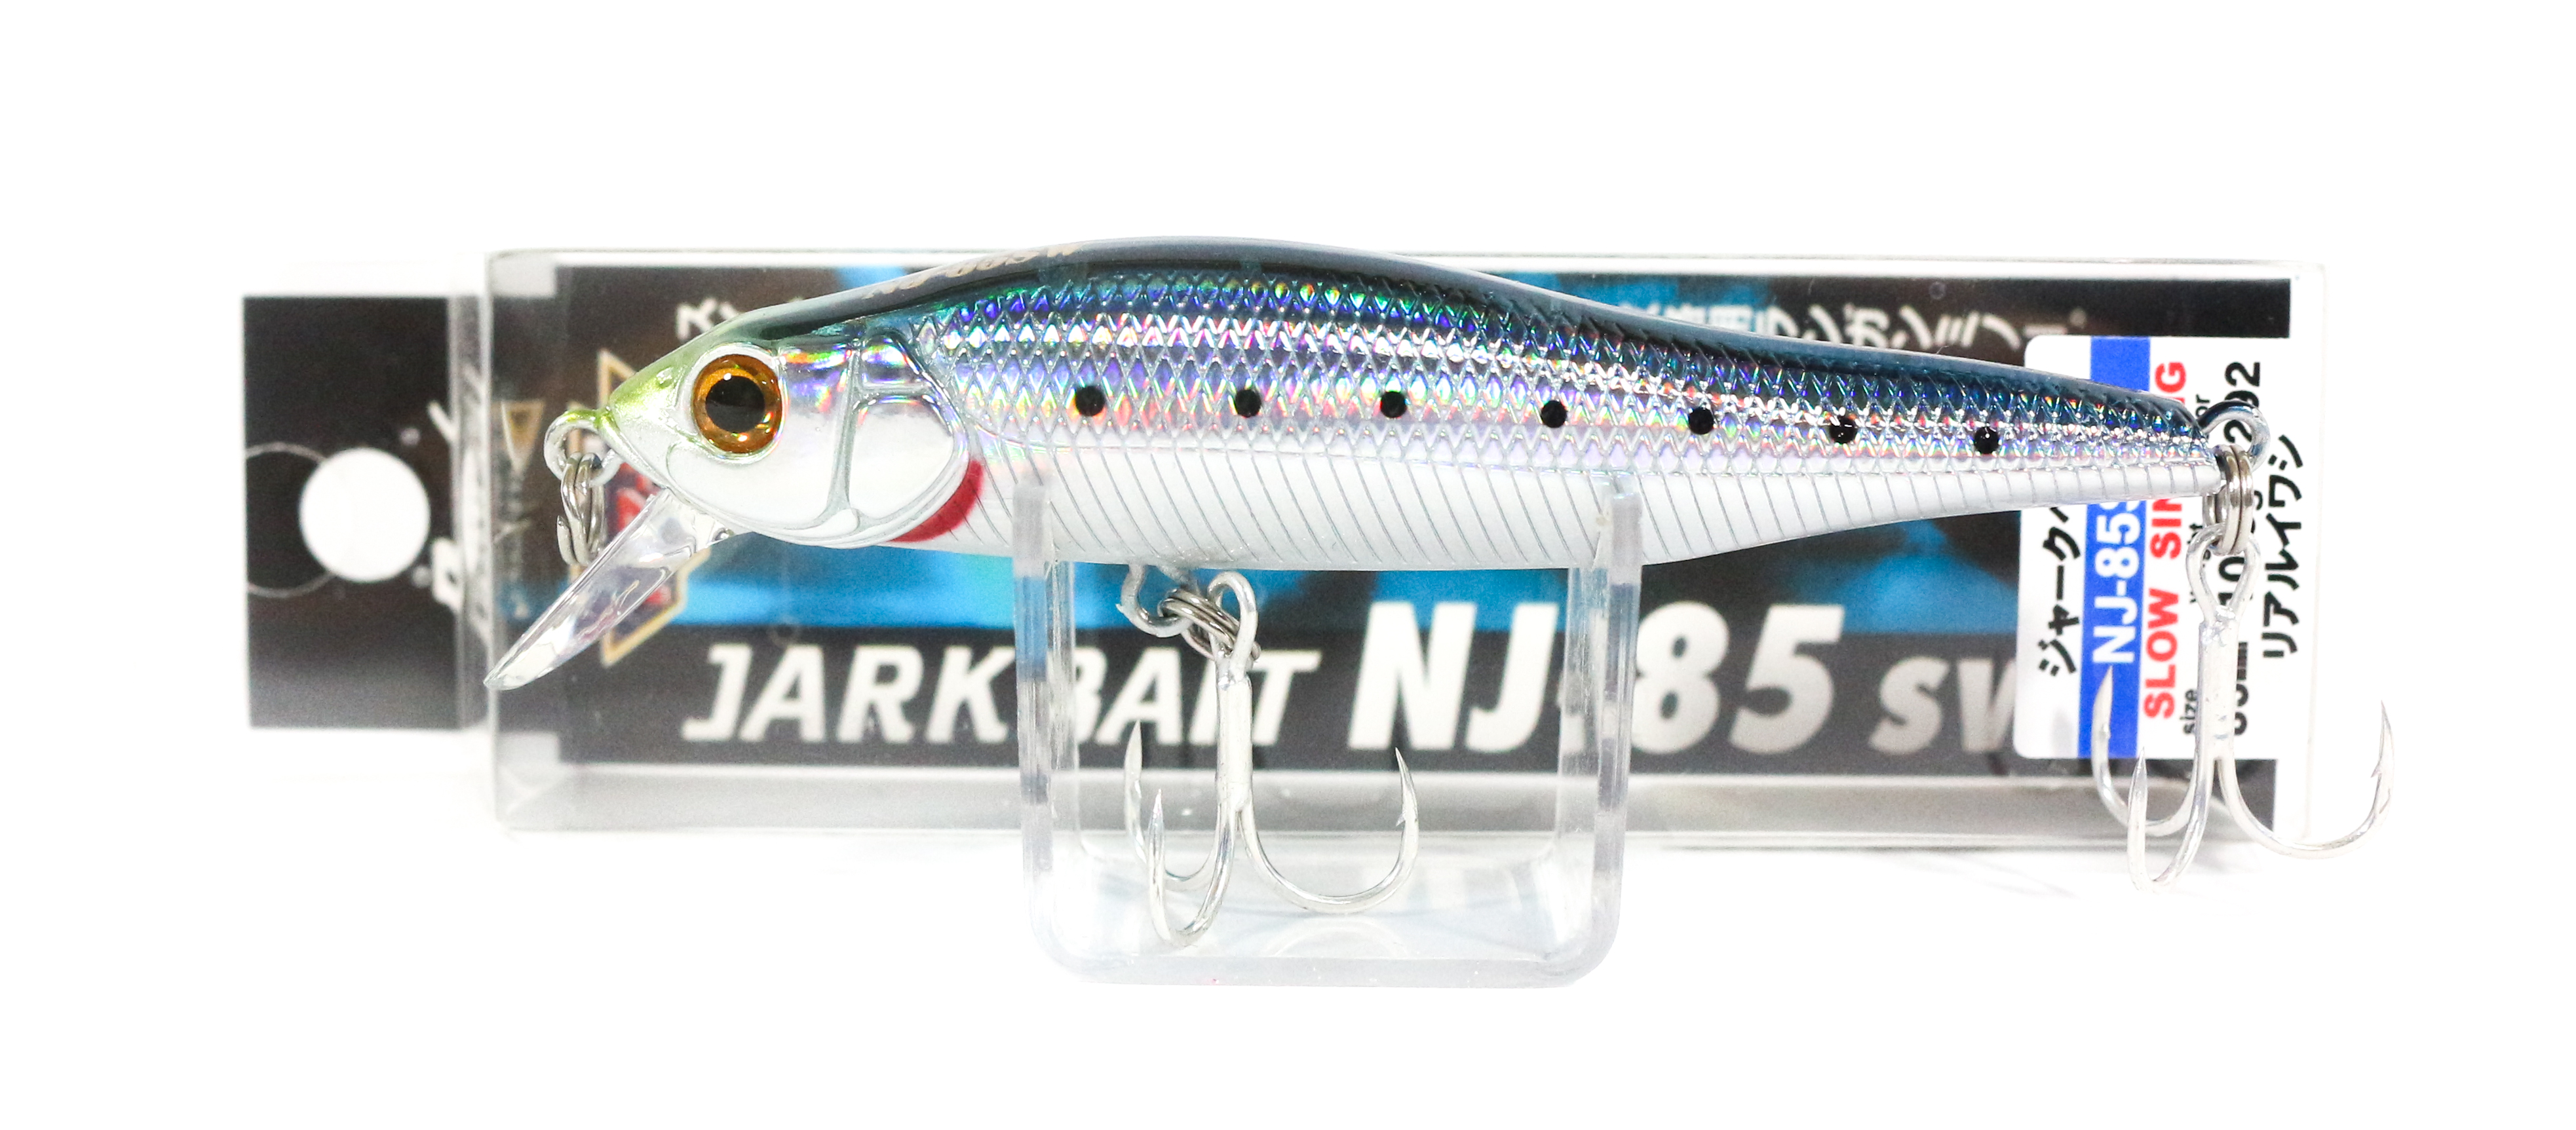 Bassday Jerkbait NJ 85 SW Sinking Minnow Lure 292 (3189)